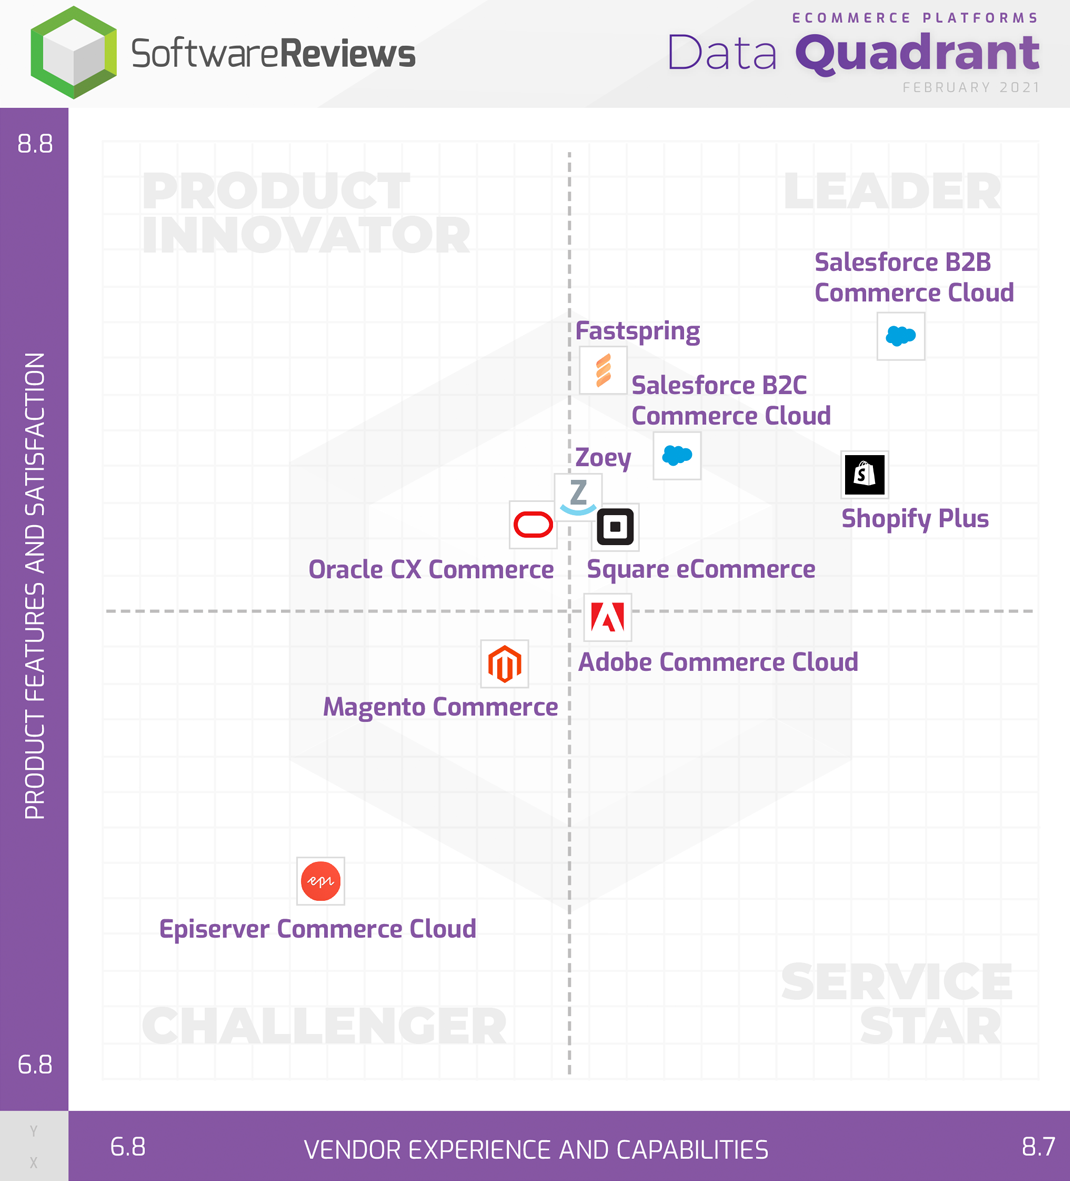 eCommerce Platforms Data Quadrant